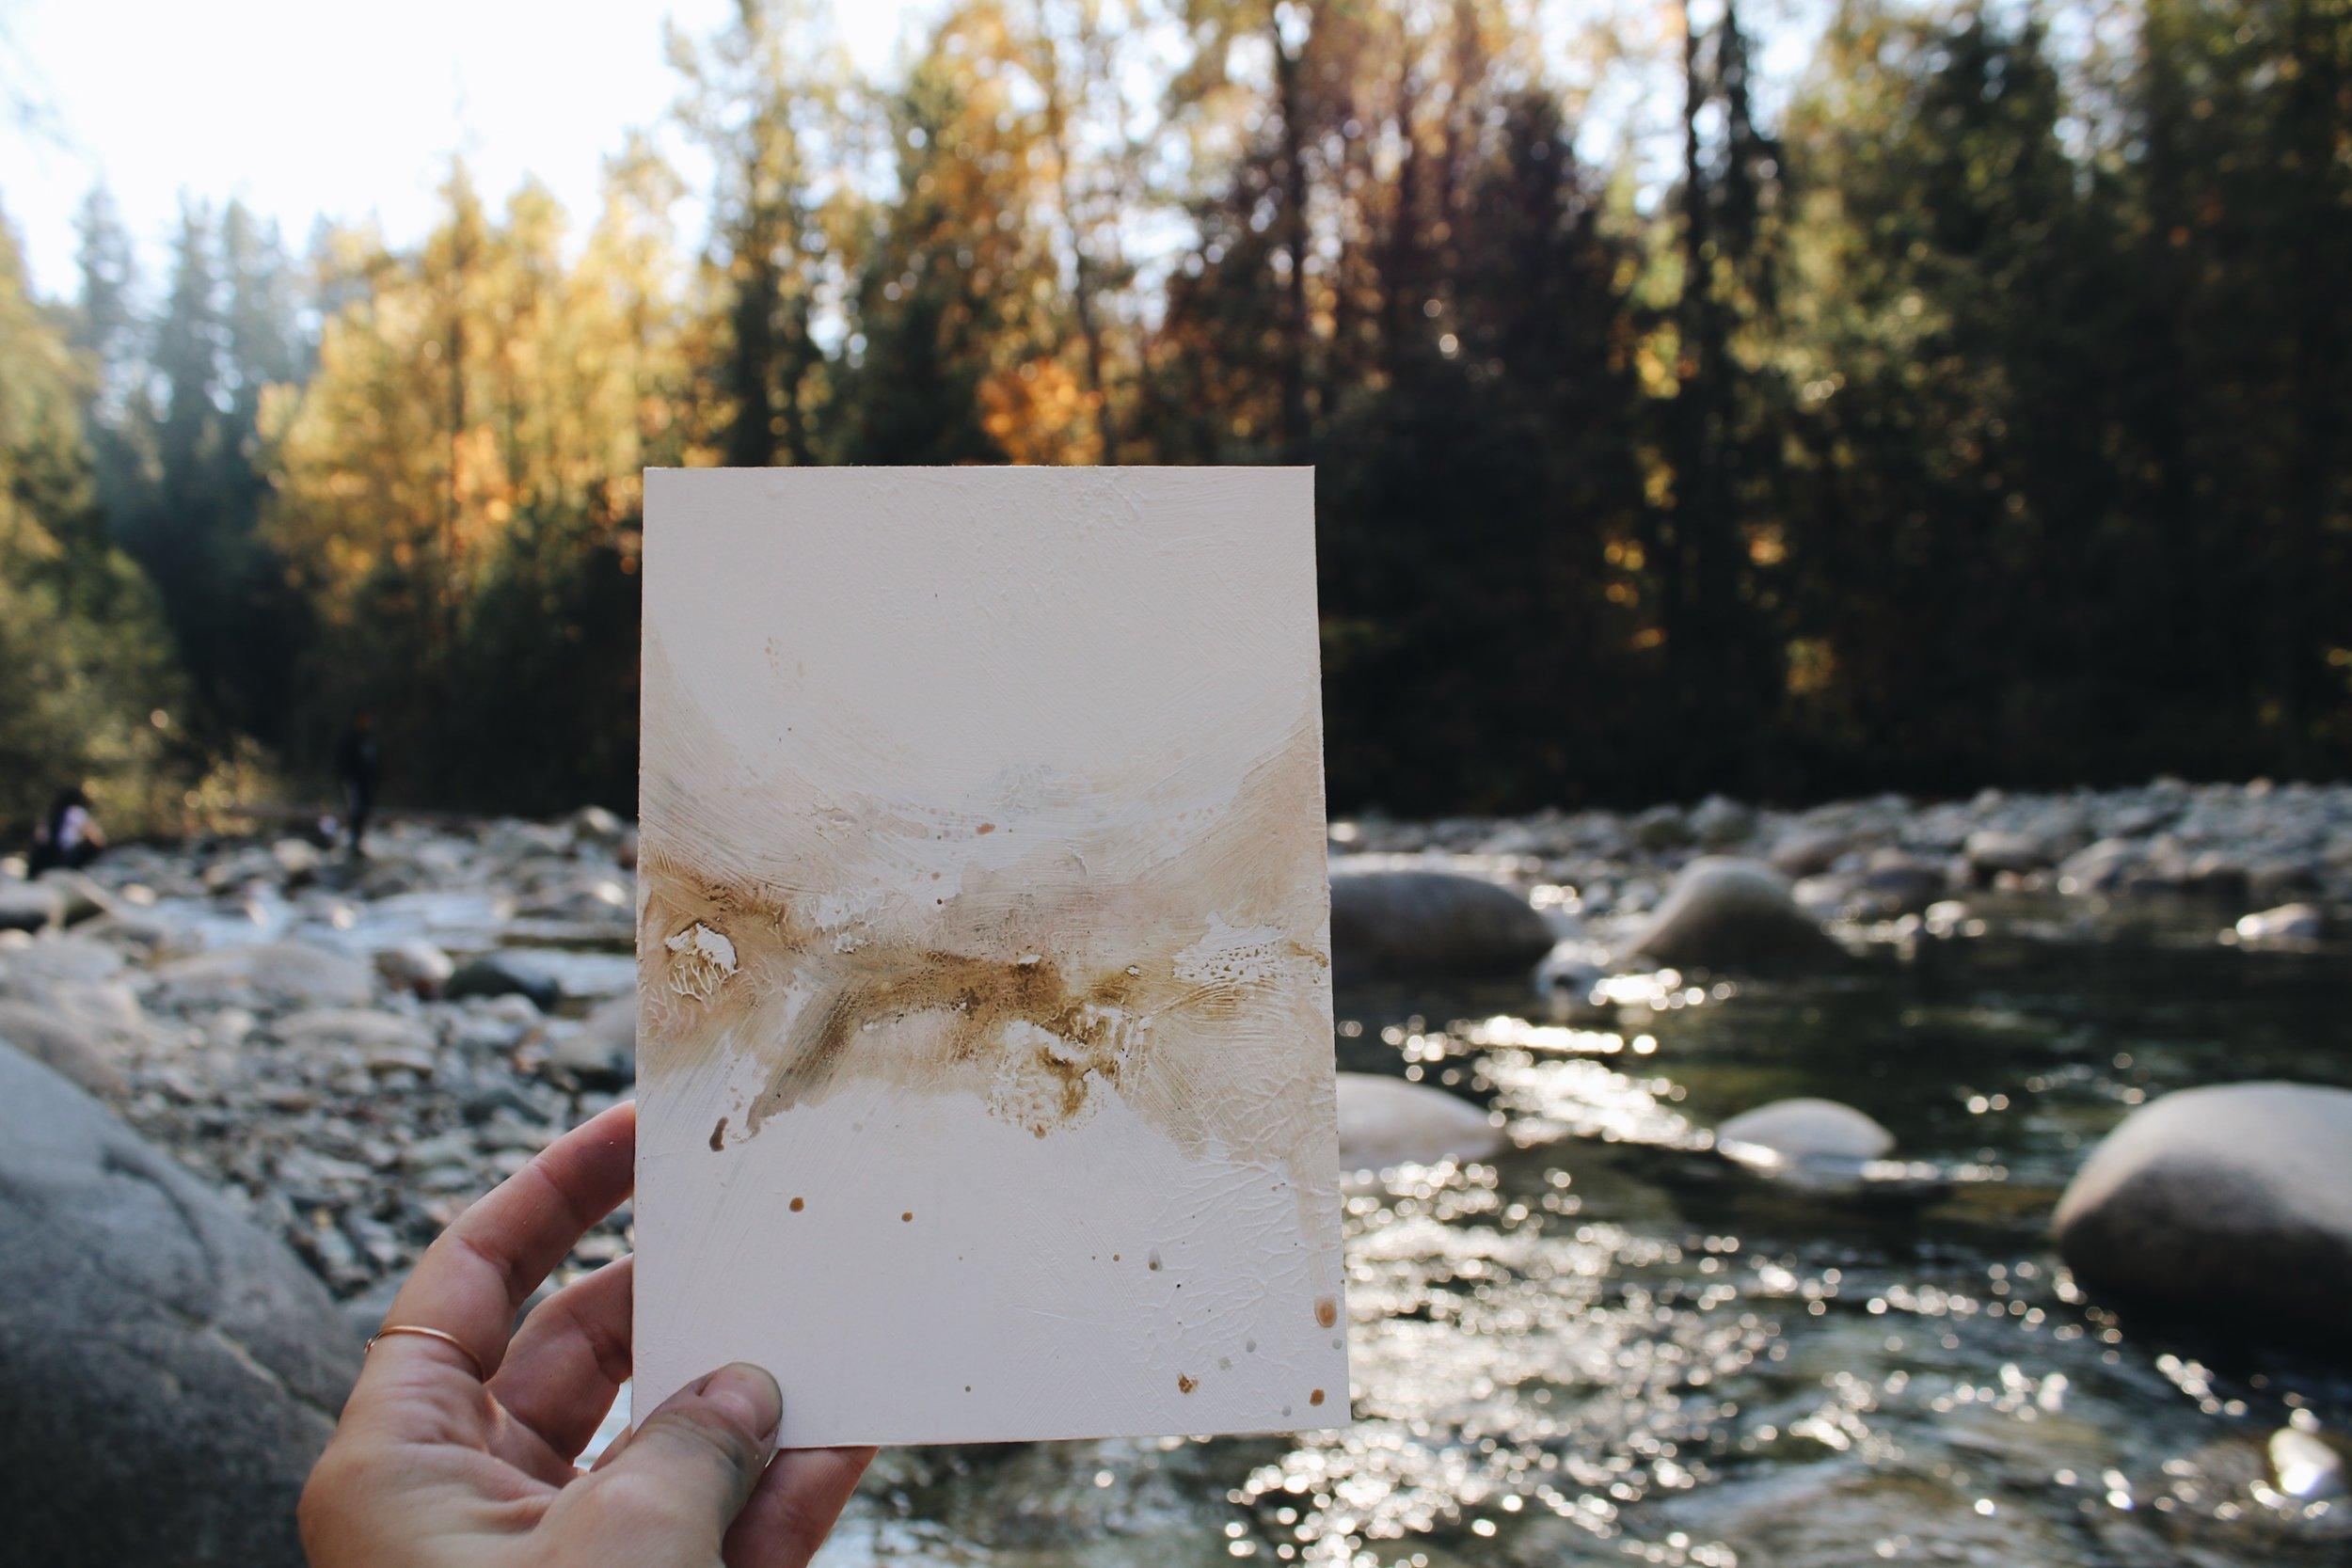 Setting up to paint for the day along the river at Lynn Canyon Park - couldn't have asked for a more perfect fall afternoon